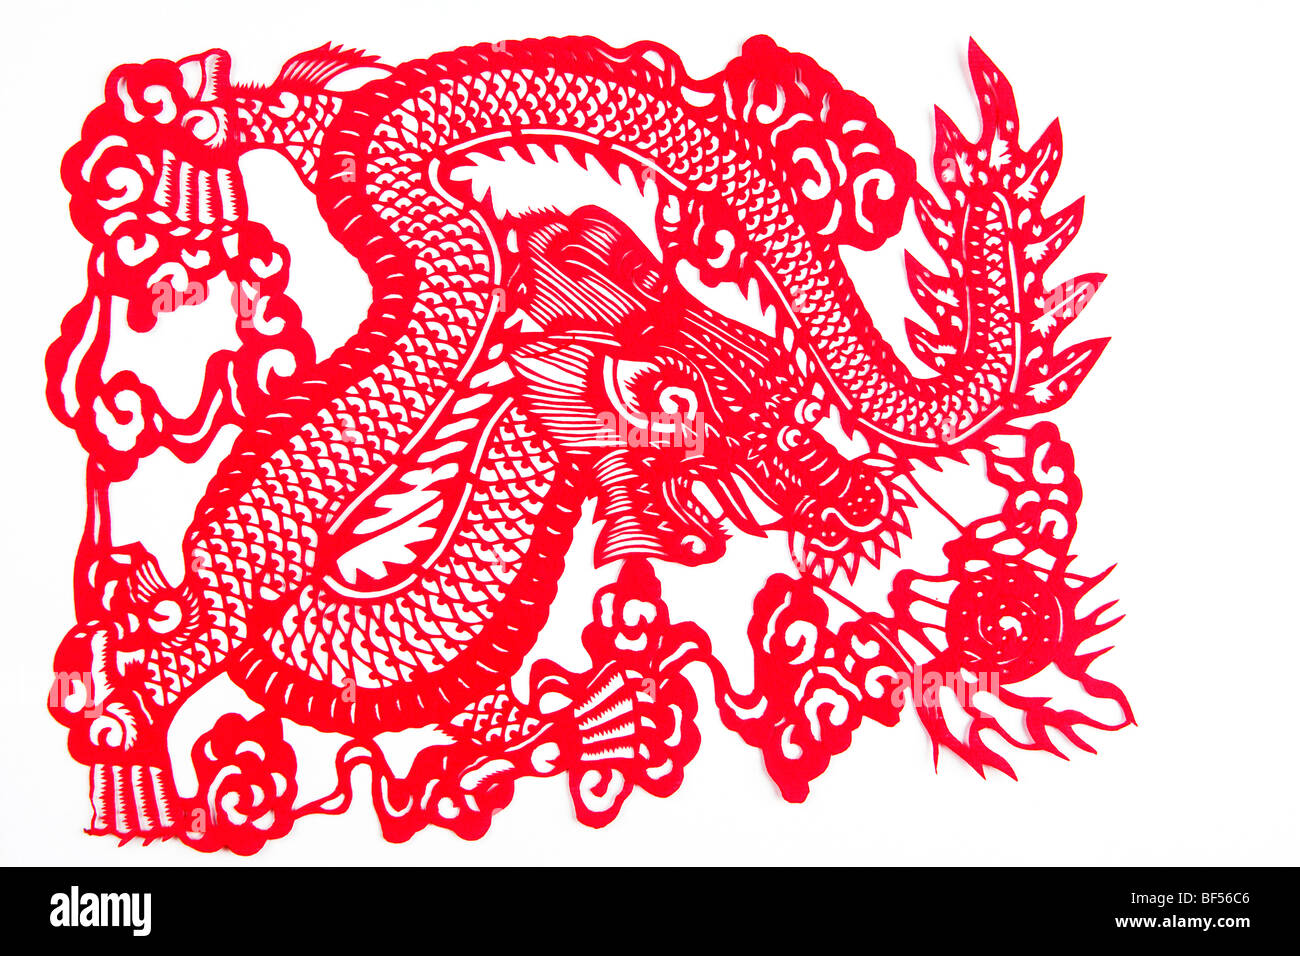 chinese paper cutting templates dragon - dragon patterns of chinese paper cutting beijing china